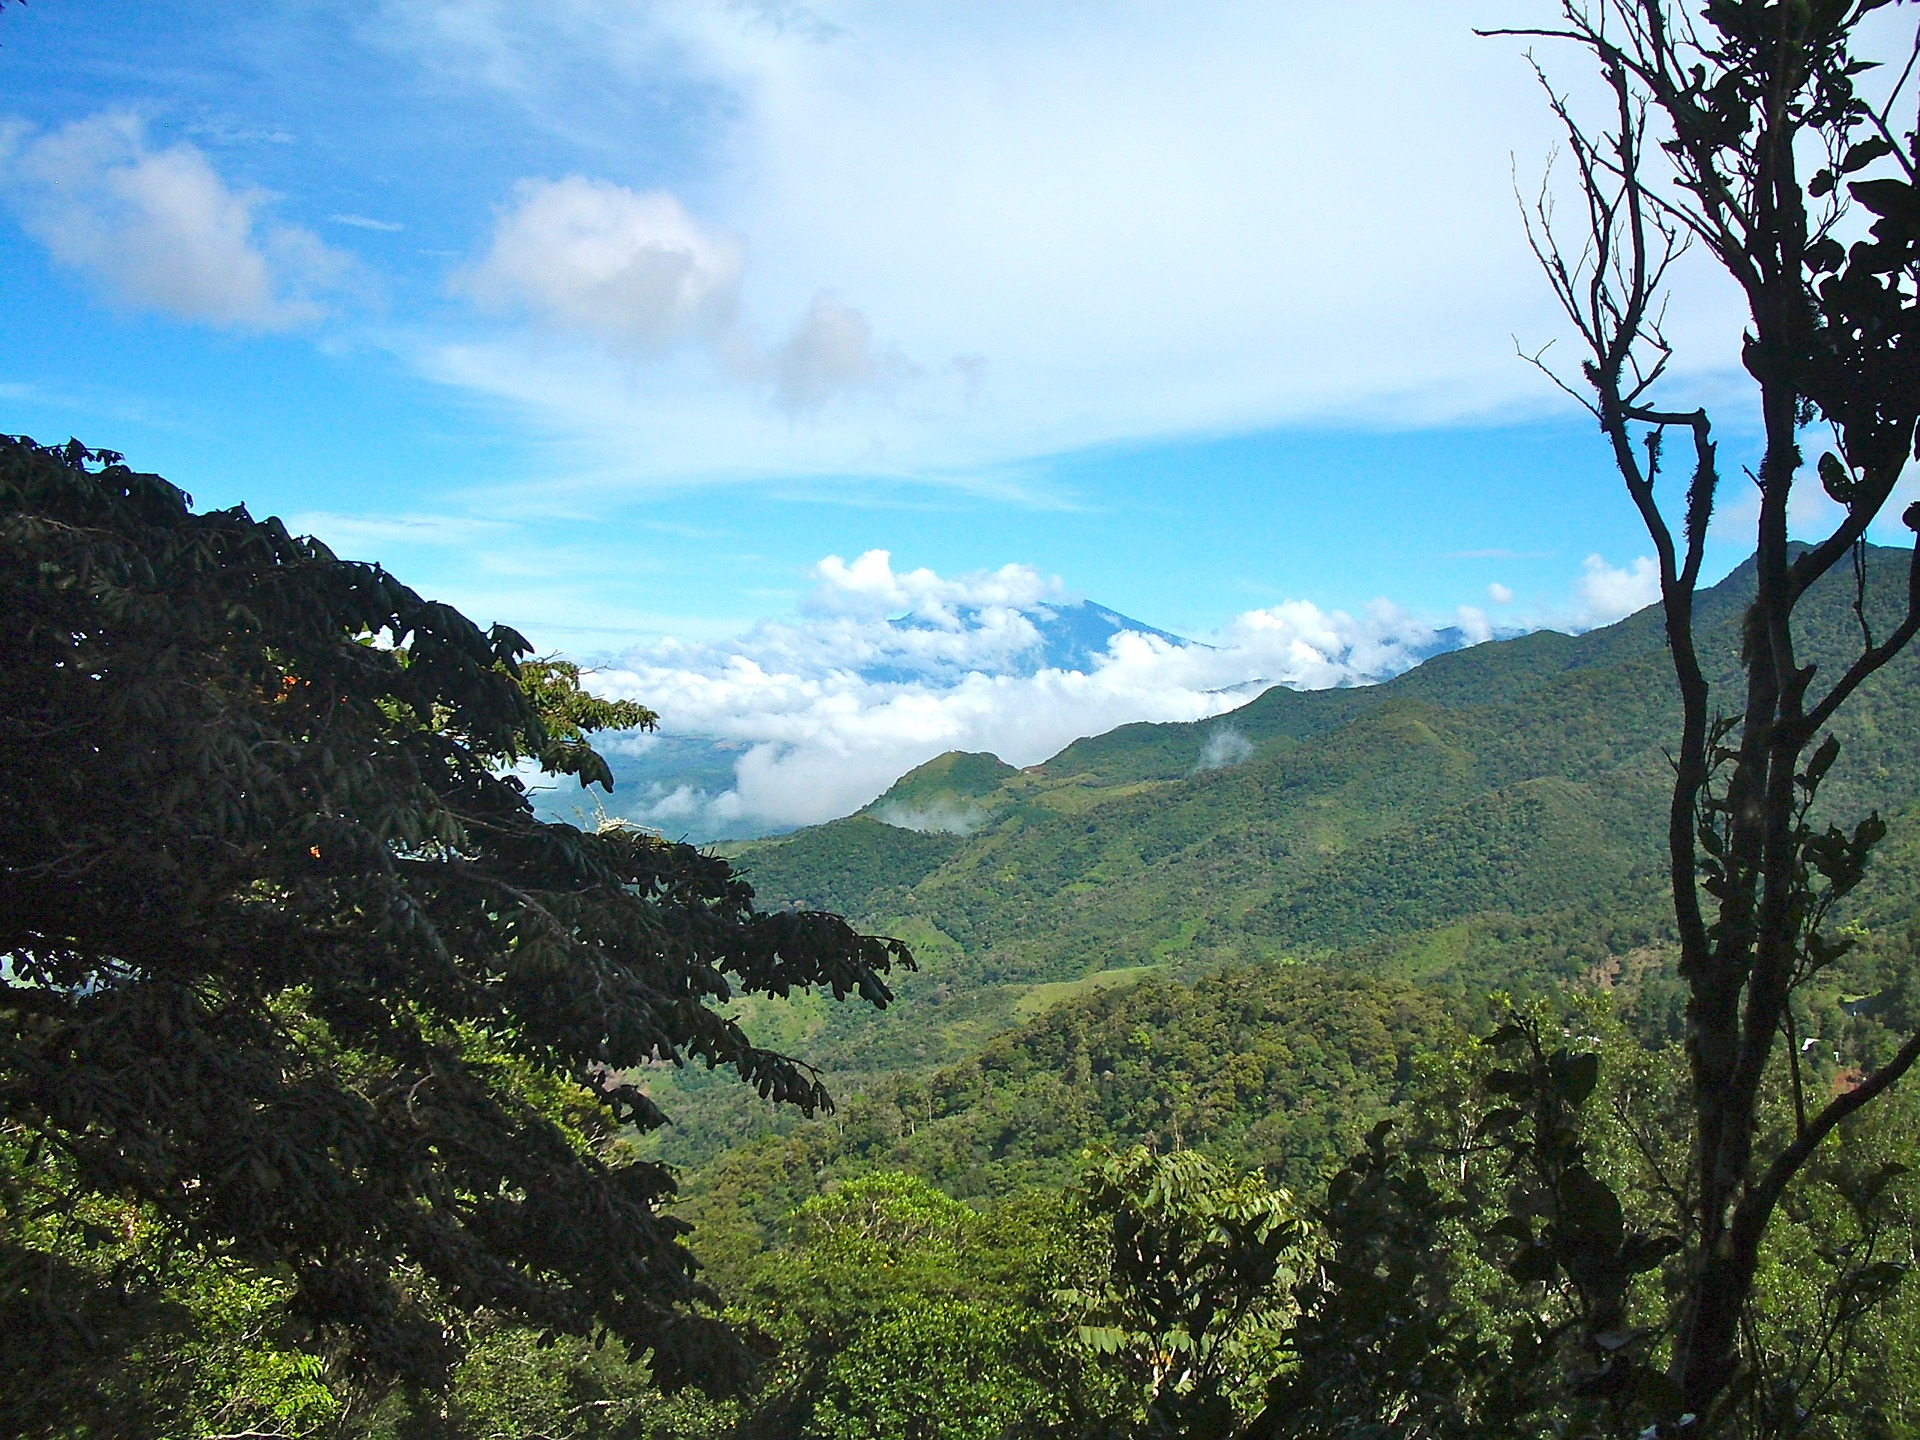 Reaching the jungles of Honduras with Scripture